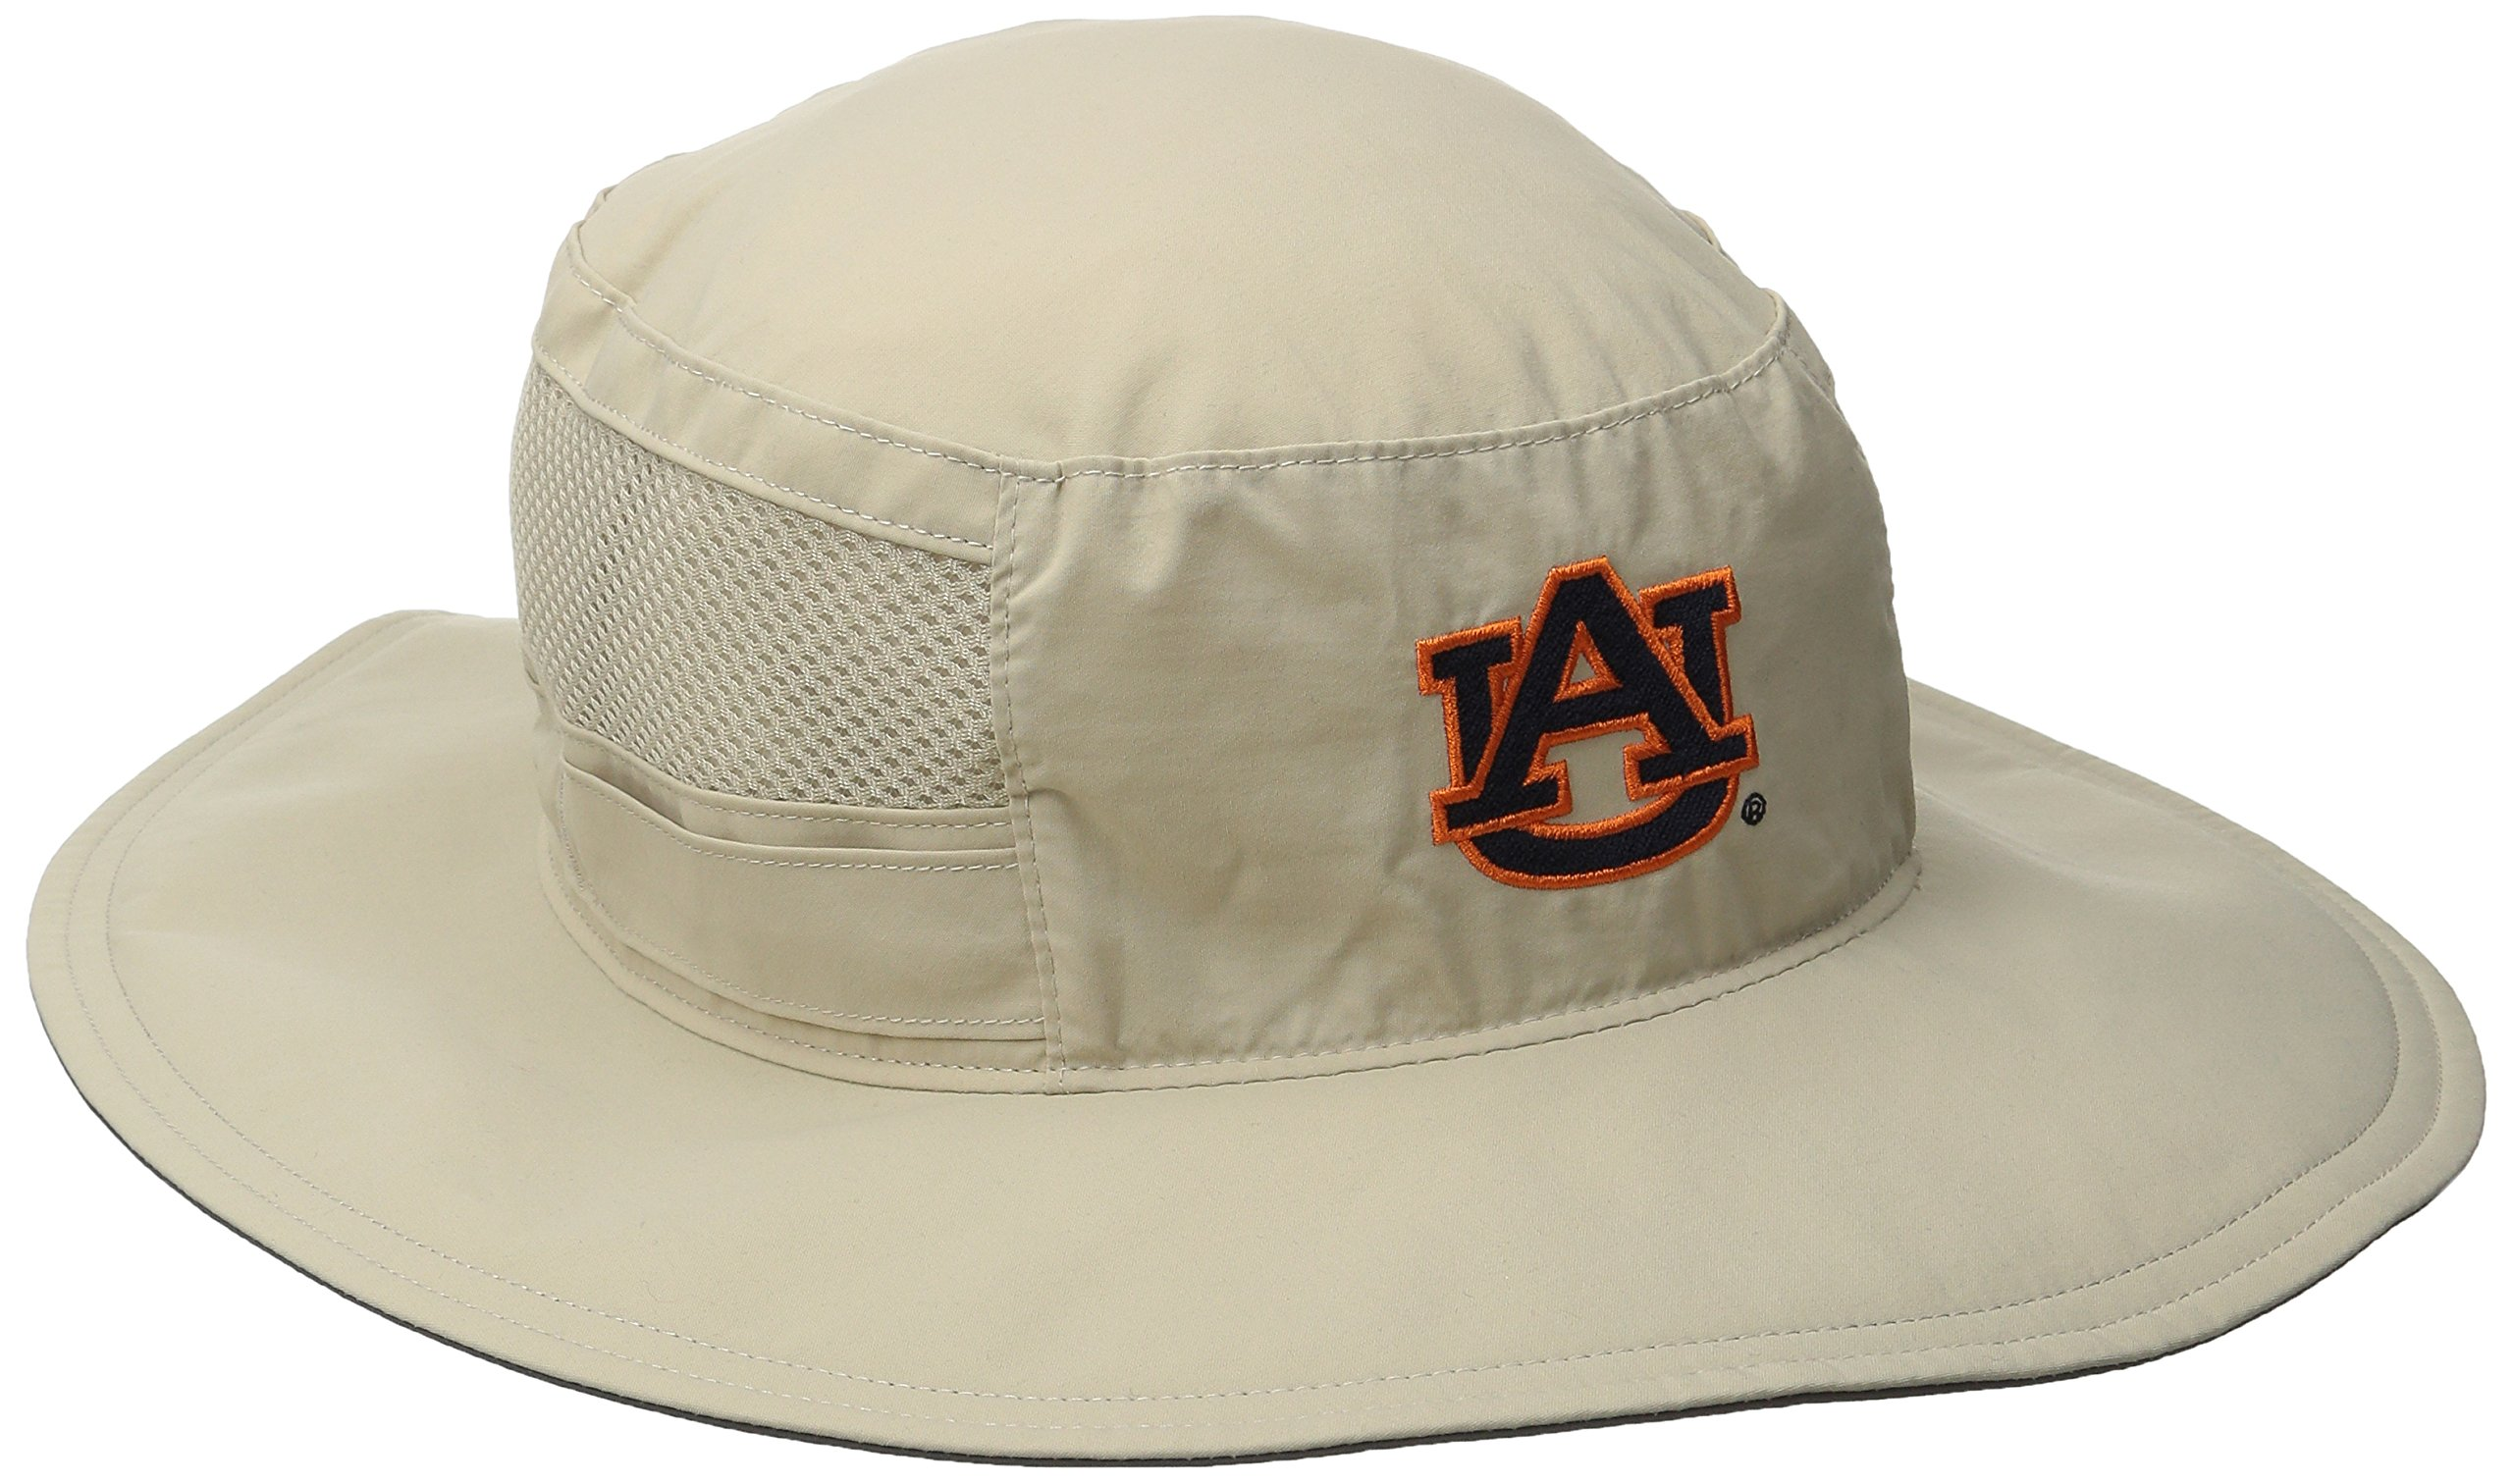 566b2cbf873 Buy NCAA Texas Longhorns Collegiate Bora Bora Booney II Hat